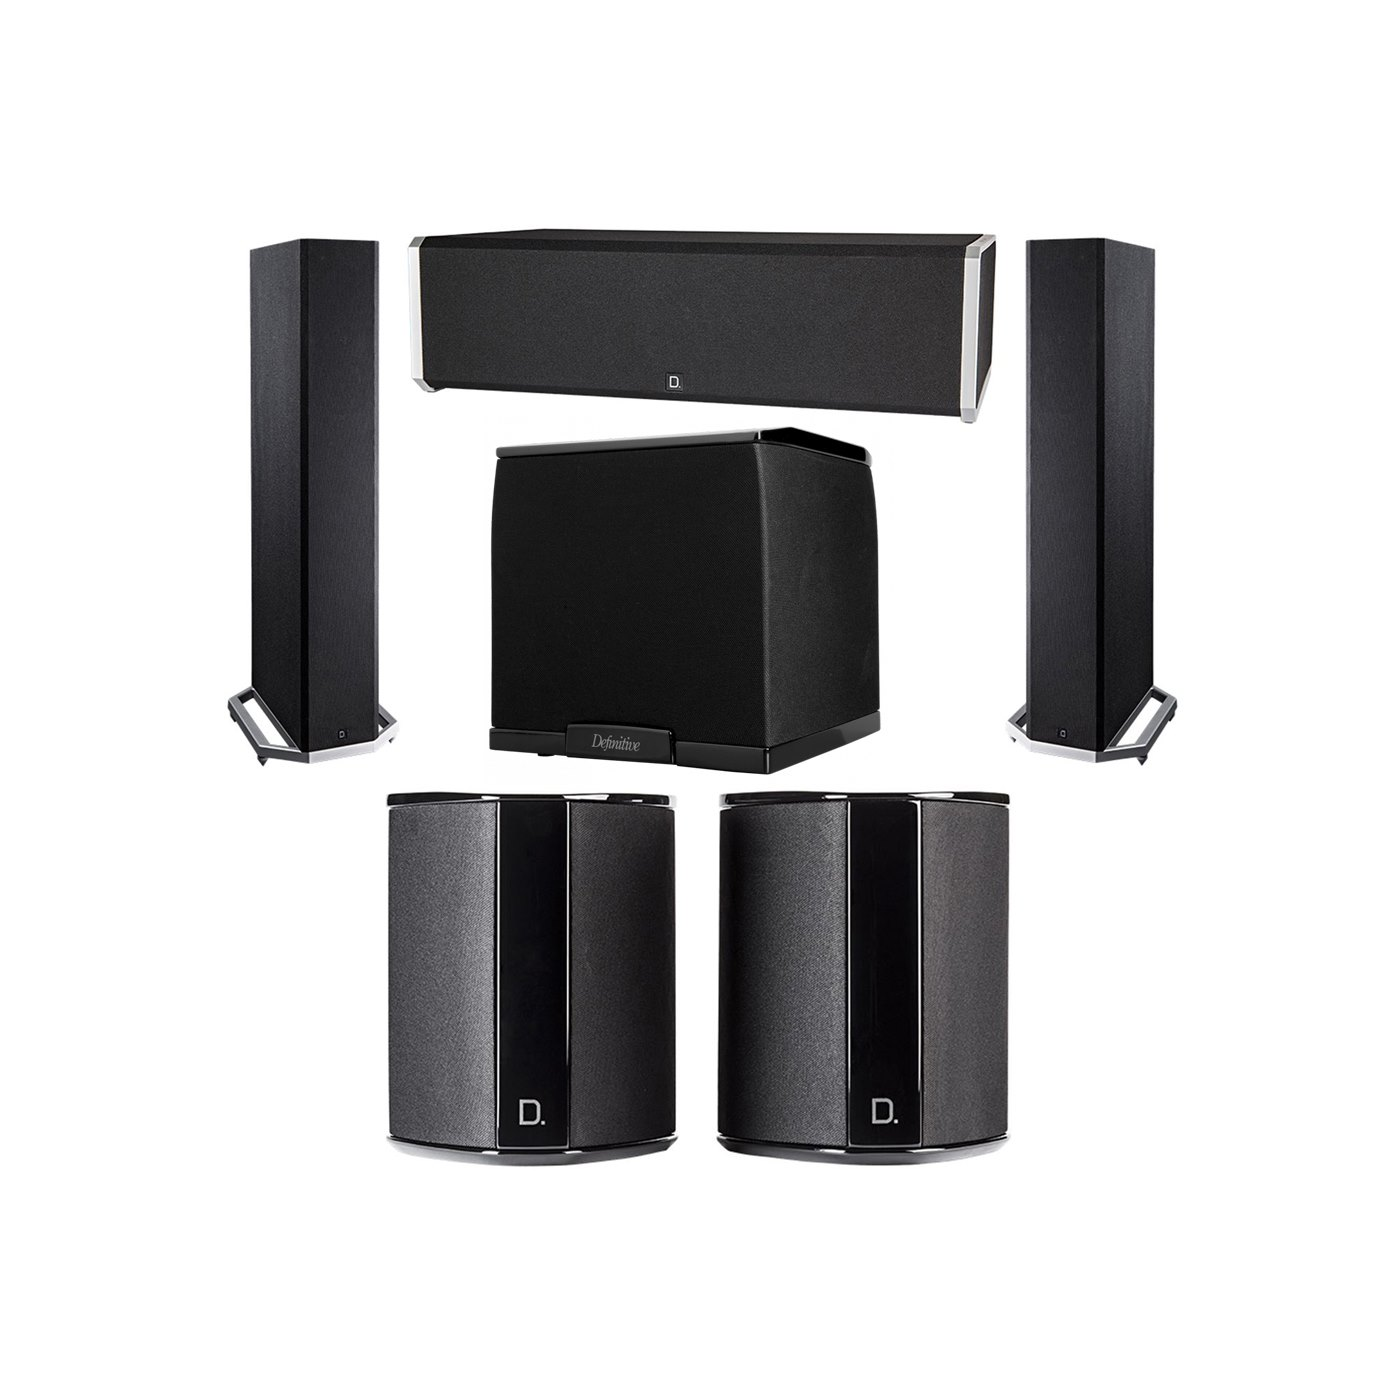 Definitive Technology 5.1 System with 2 BP9020 Tower Speakers, 1 CS9040 Center Channel Speaker, 2 SR9040 Surround Speaker, 1 Definitive Technology SuperCube 2000 Powered Subwoofer